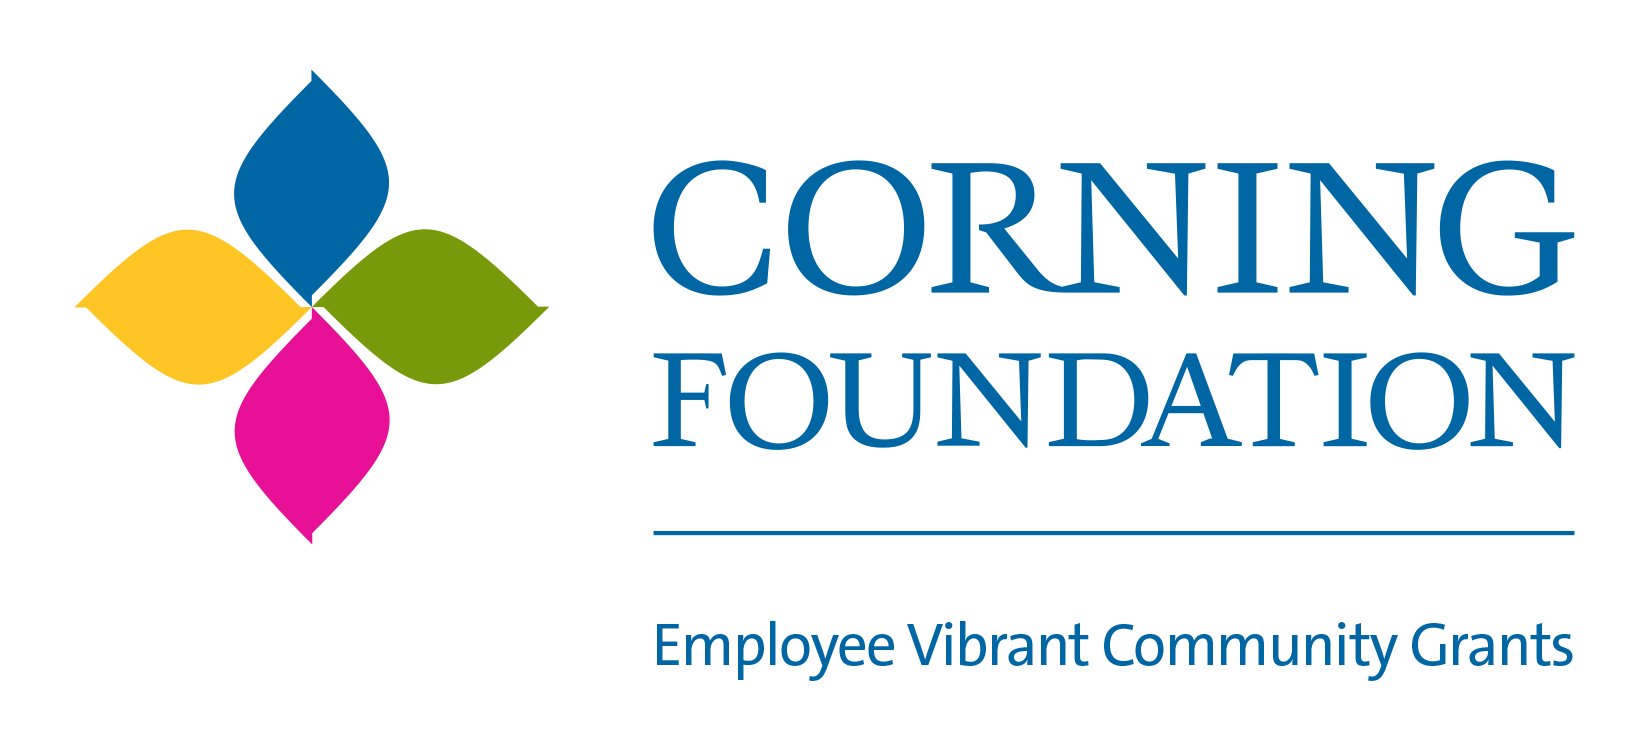 Employee Vibrant Community Grants - Corning Incorporated Foundation